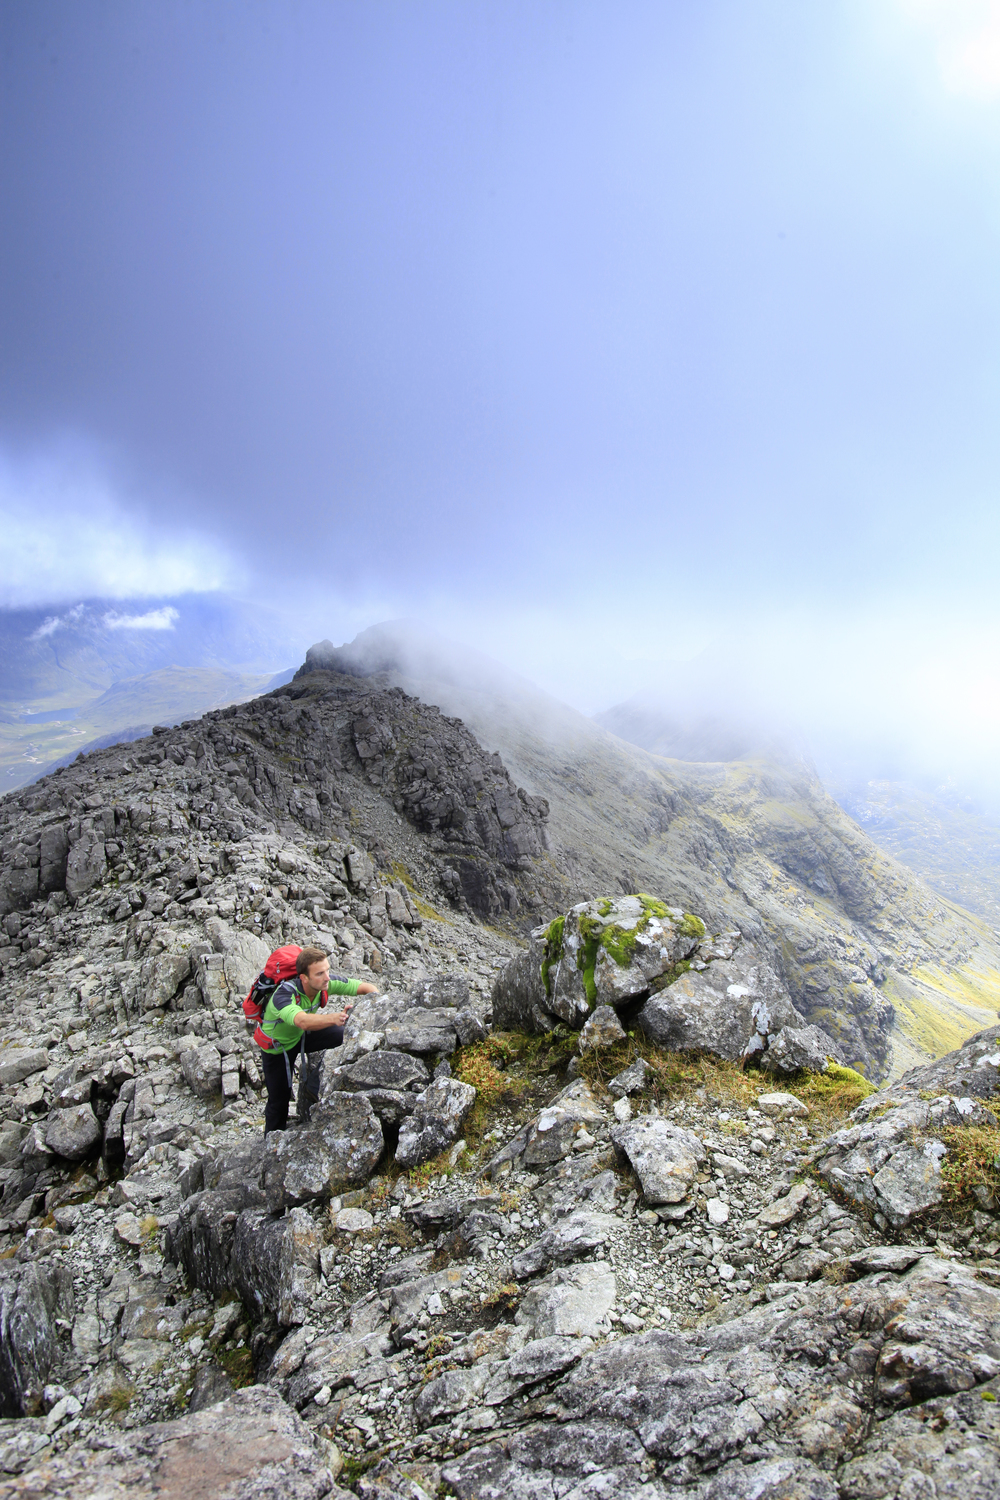 On the experience-testing final section of Sgurr Nan Gillean's summit ridge. Photo: Tom Bailey / Trail Magazine.